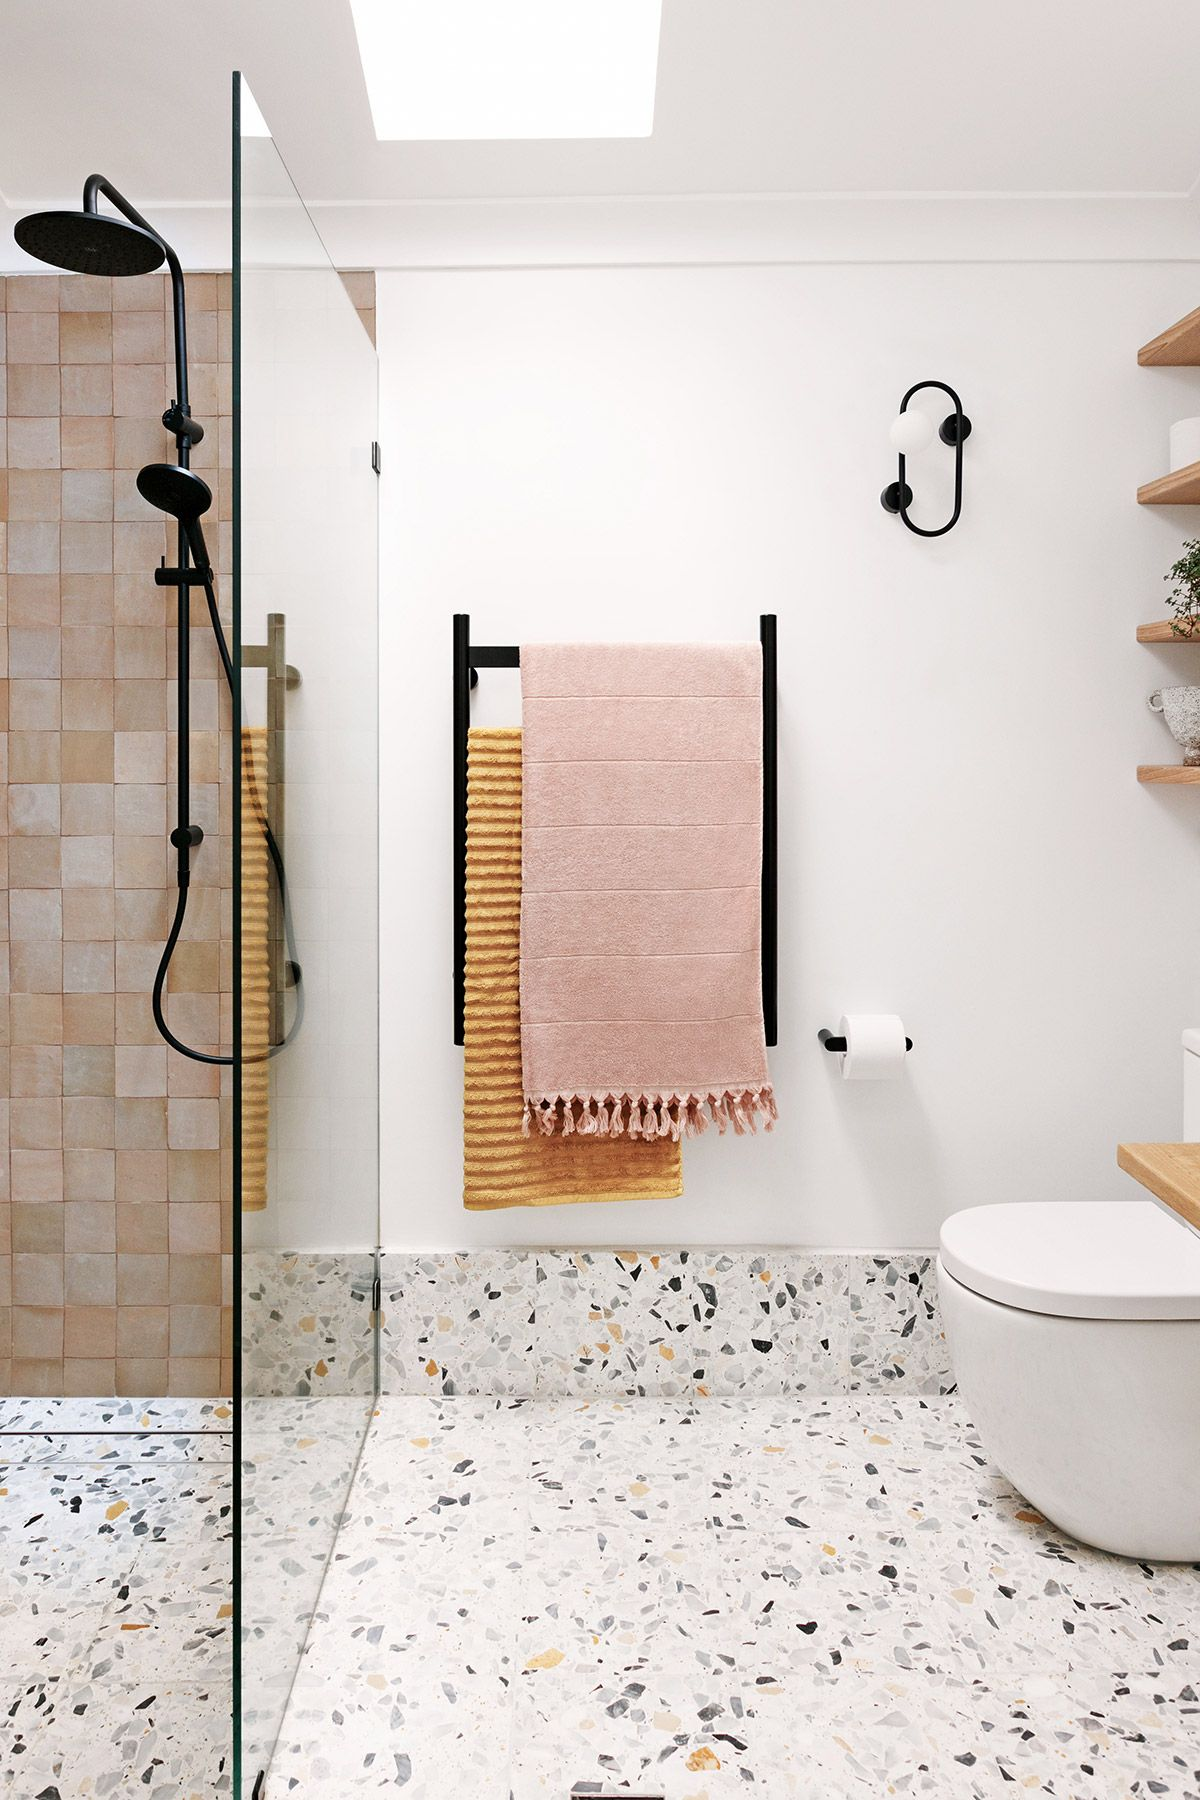 My Bathroom Renovation It S All About Terrazzo And Moroccan Tiles We Are Scout Bathroom Interior Design Bathroom Interior Bathroom Renovation